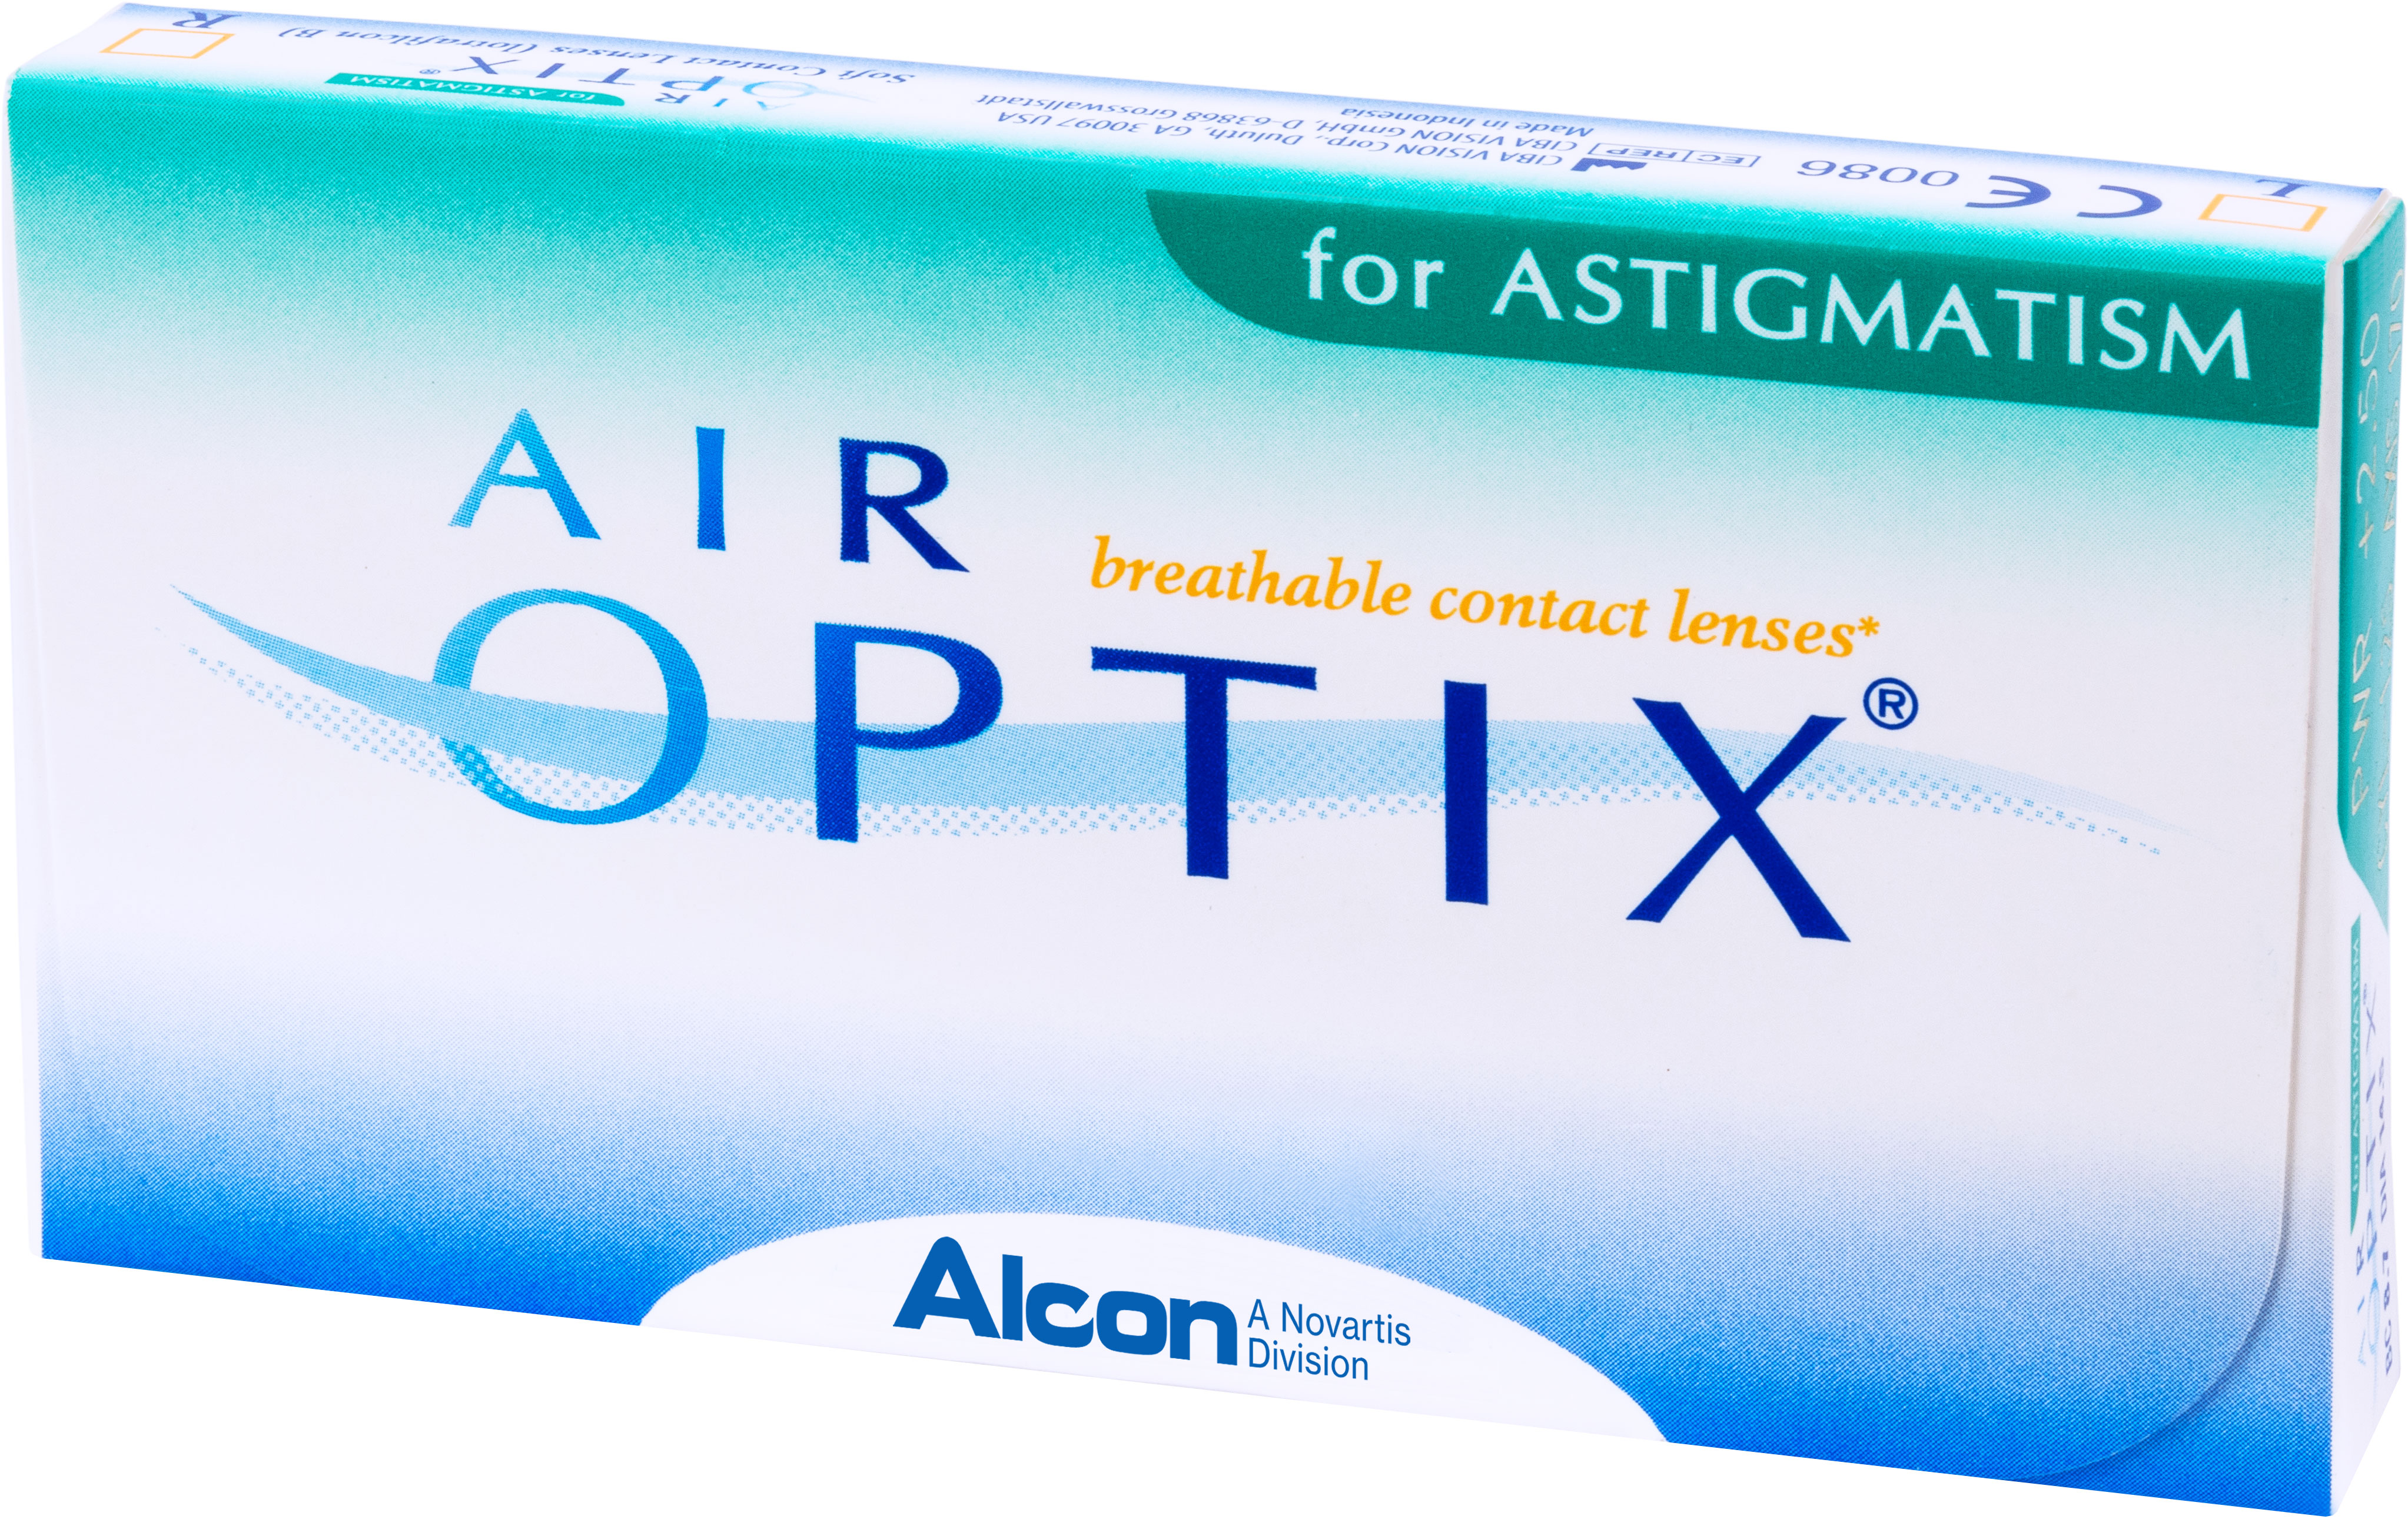 Аlcon контактные линзы Air Optix for Astigmatism 3pk /BC 8.7/DIA14.5/PWR -6.00/CYL -1.25/AXIS 60100007025with Hydraclear